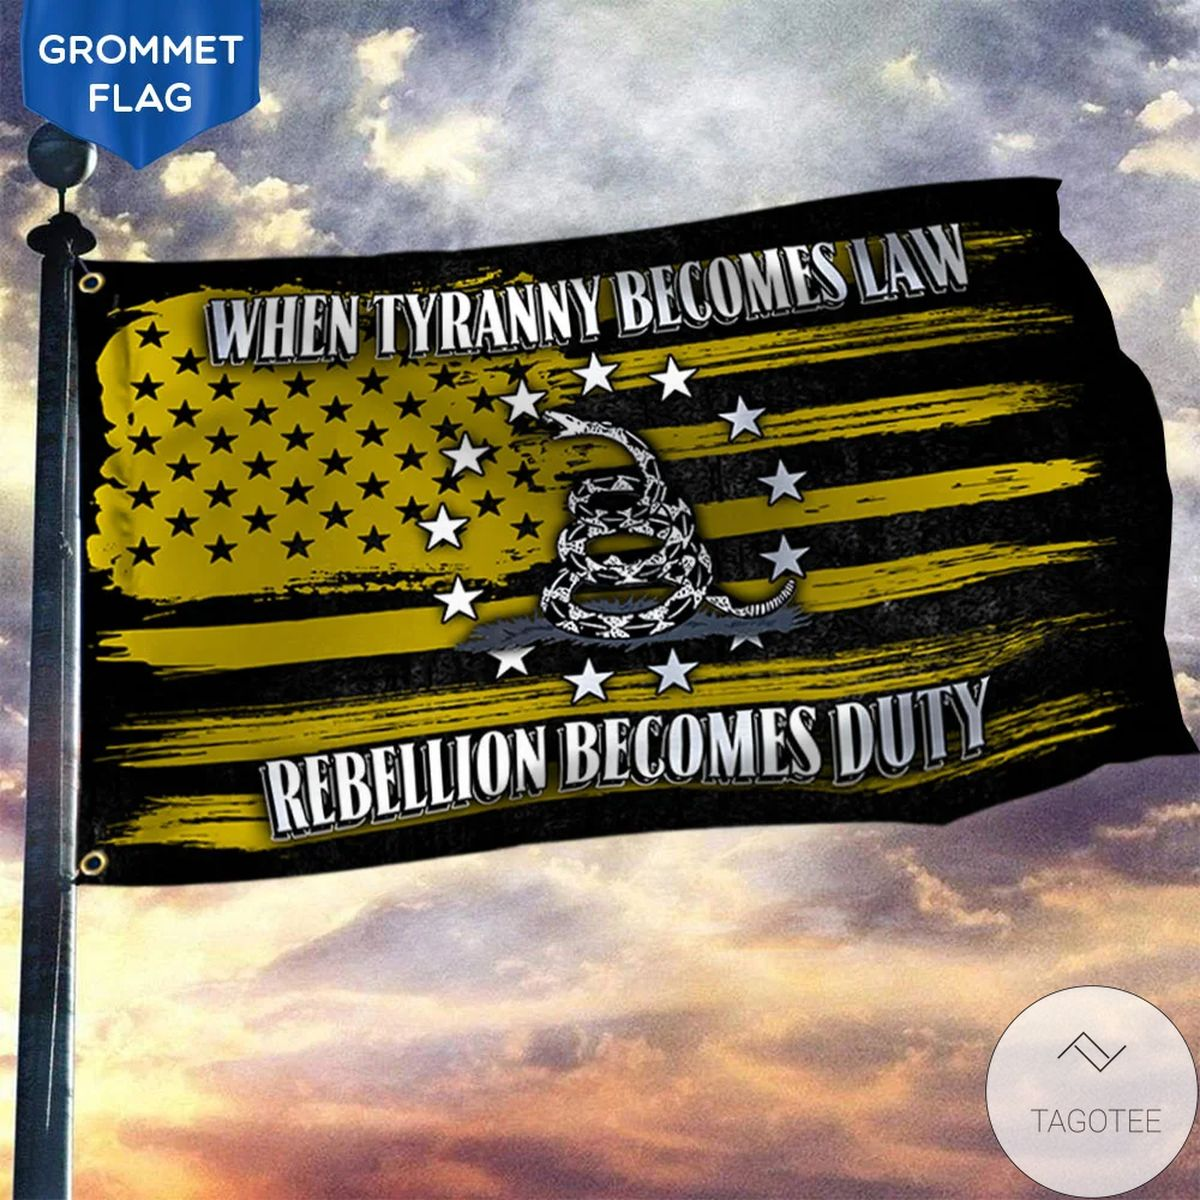 When Tyranny Becomes Law Rebellion Becomes Duty Flag